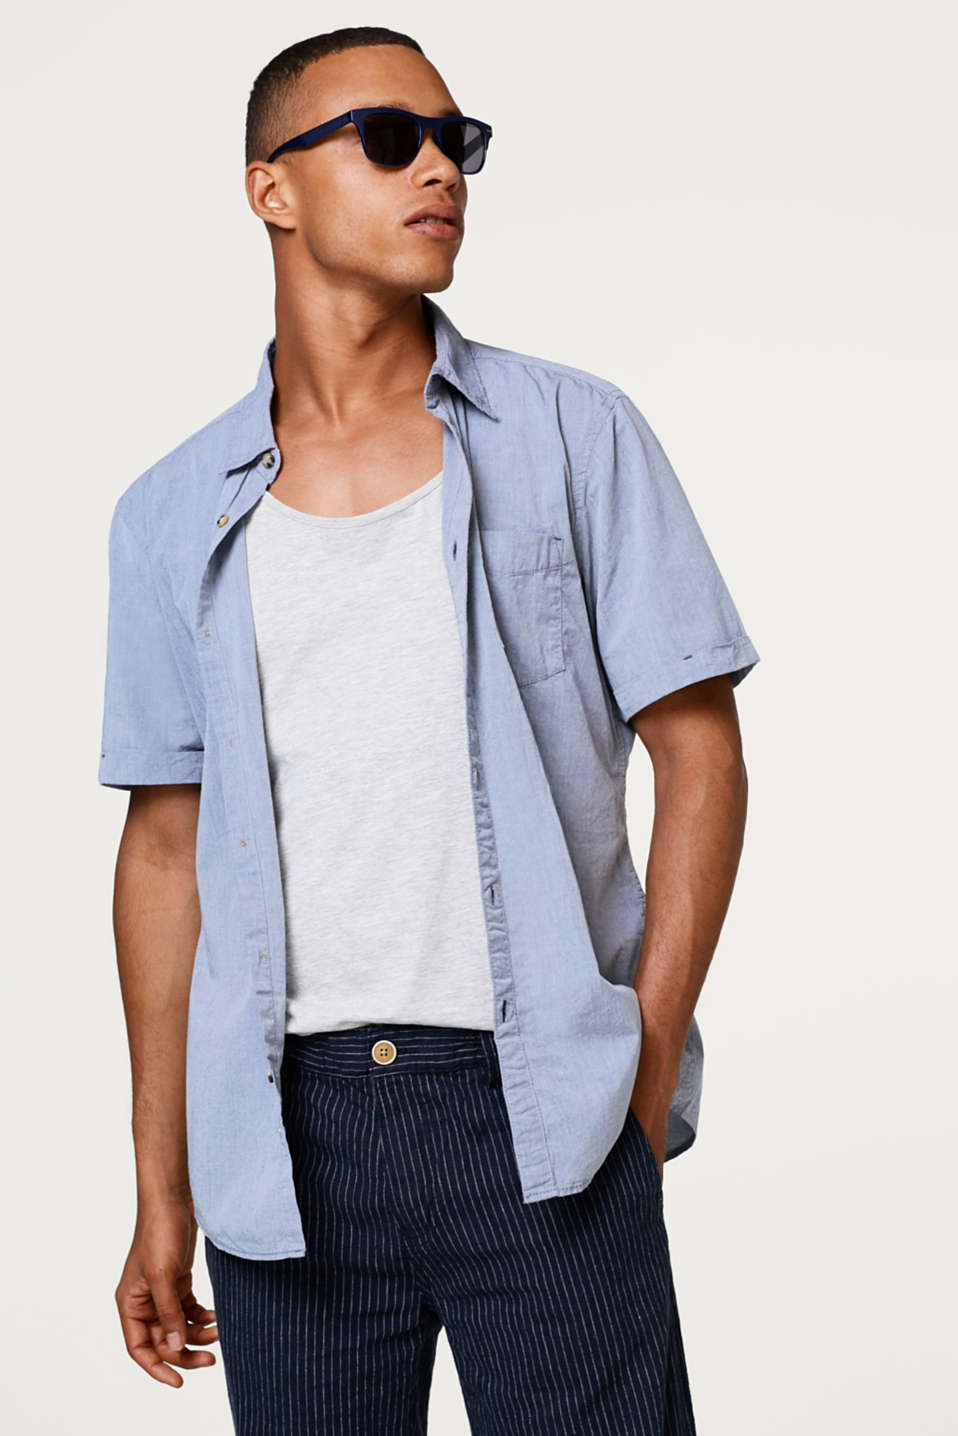 edc - Casual short sleeve shirt composed of cotton chambray